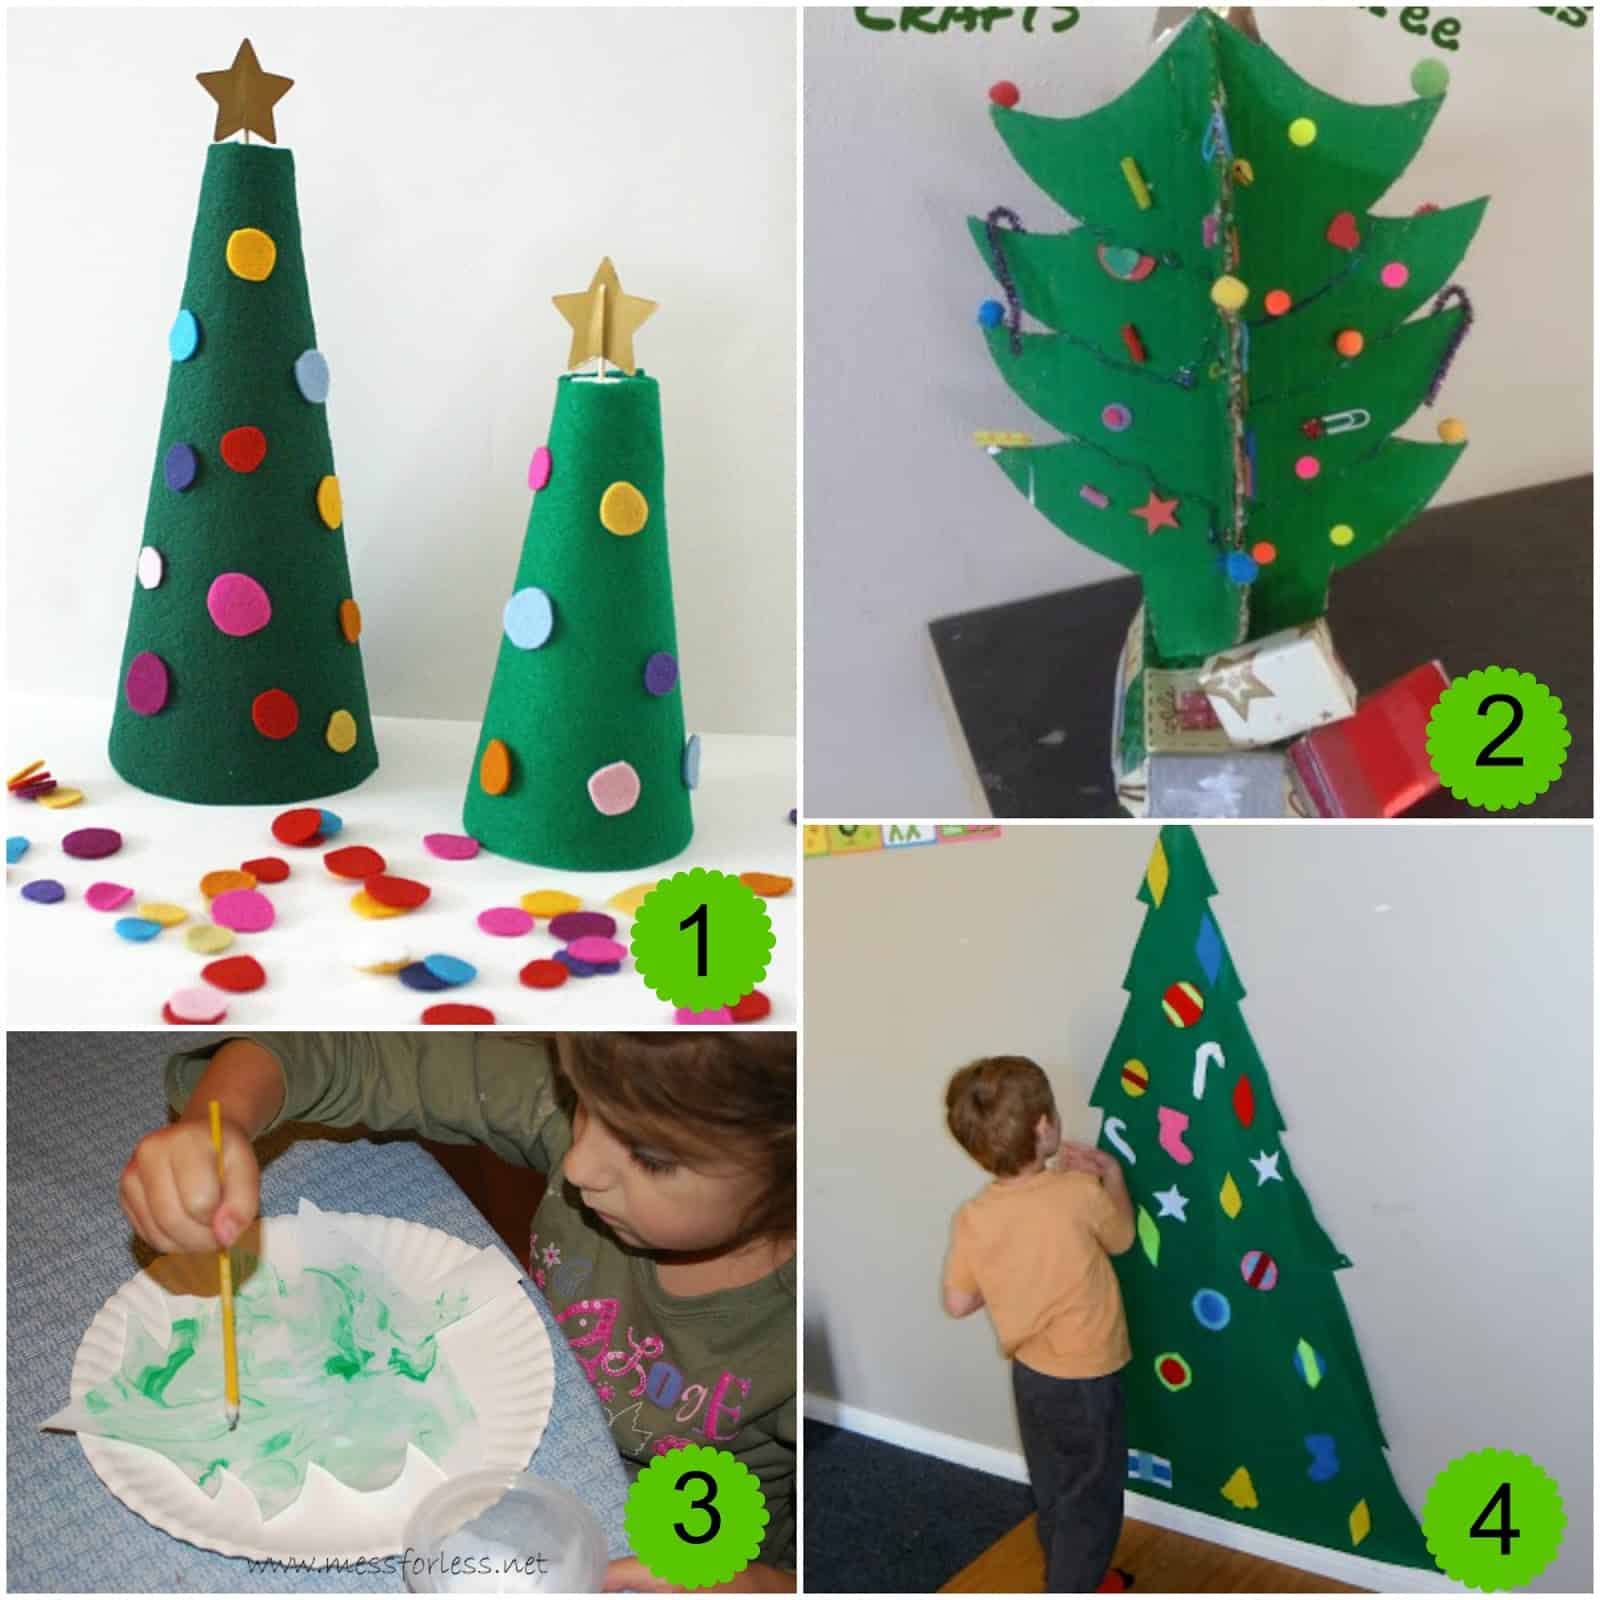 10 Christmas Tree Activities And The Weekly Kids Co Op Mess For Less Preschool Craft